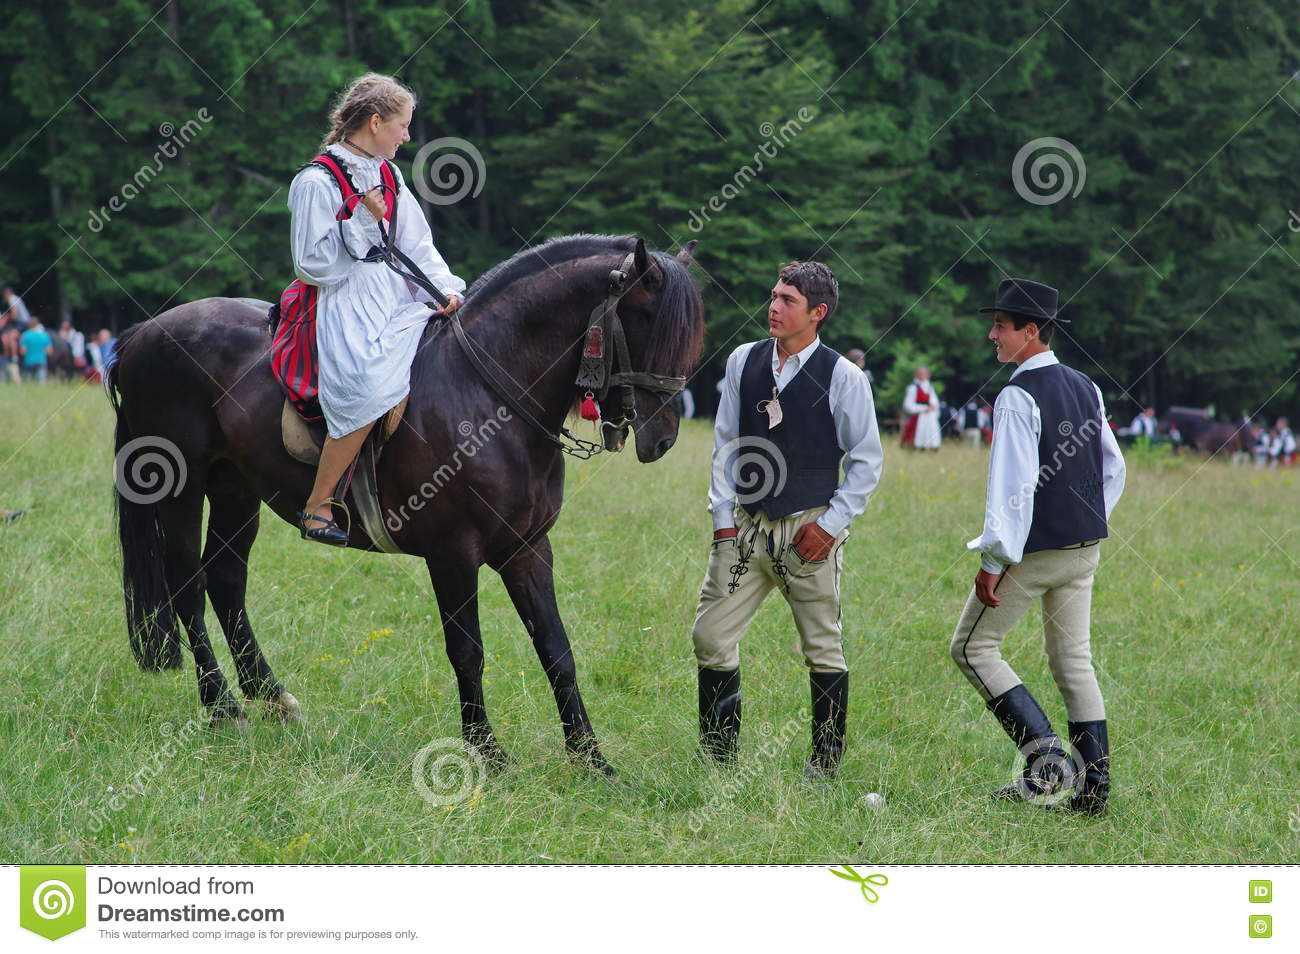 Young lady on horseback and young boys